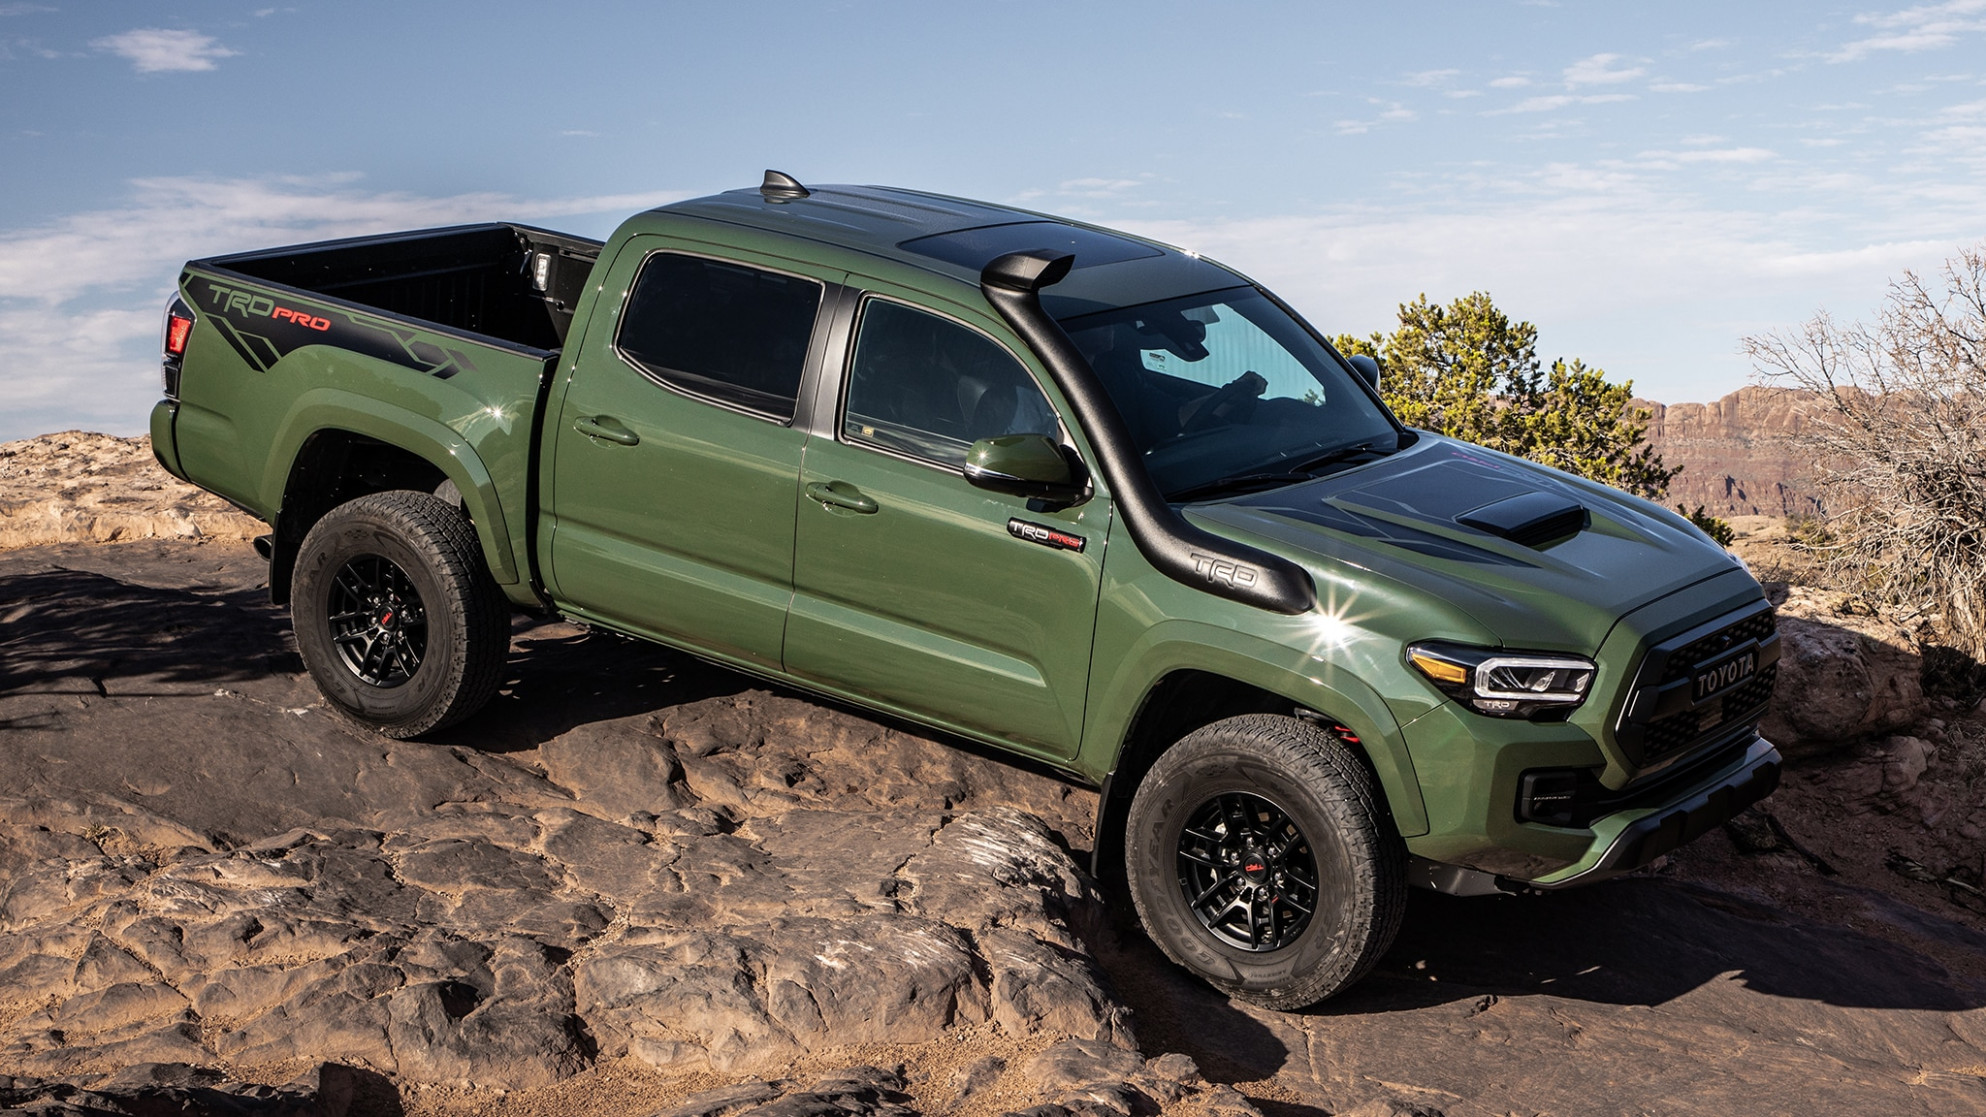 6 Toyota Tacoma TRD Pro Review: What's Improved, What's Not